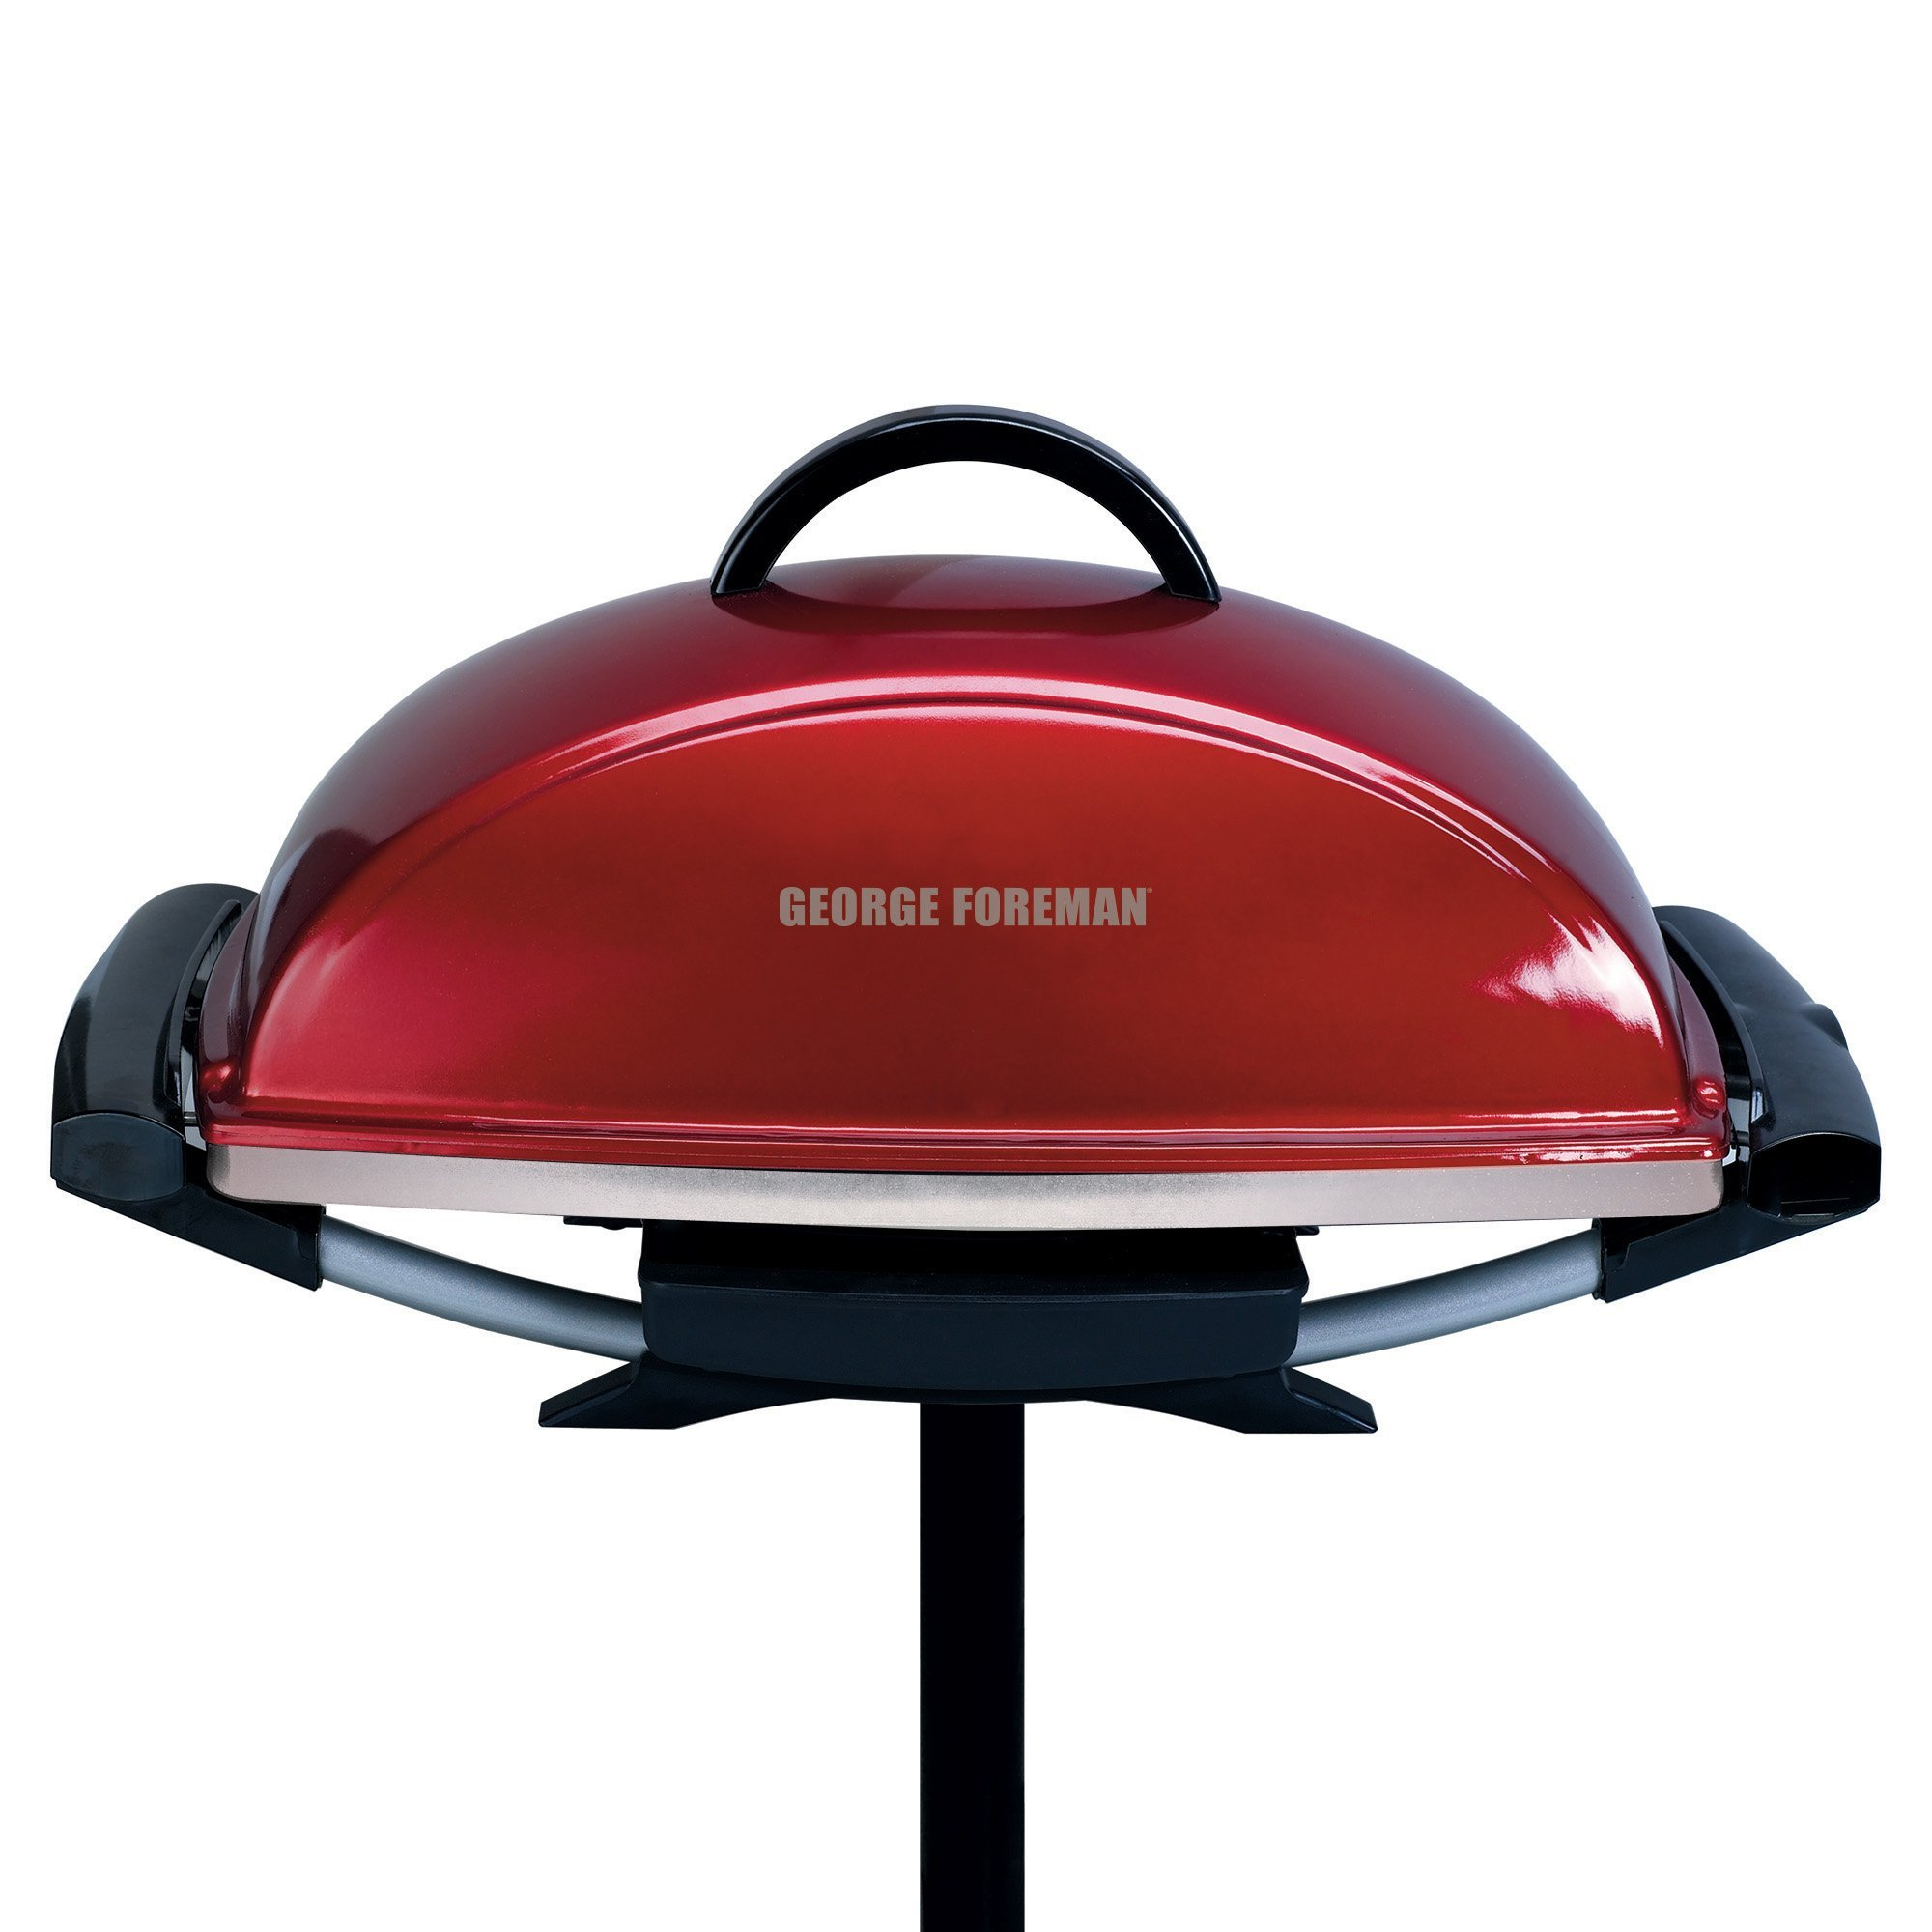 George Foreman GFO201RX Indoor/Outdoor Electric Grill, Red by George Foreman